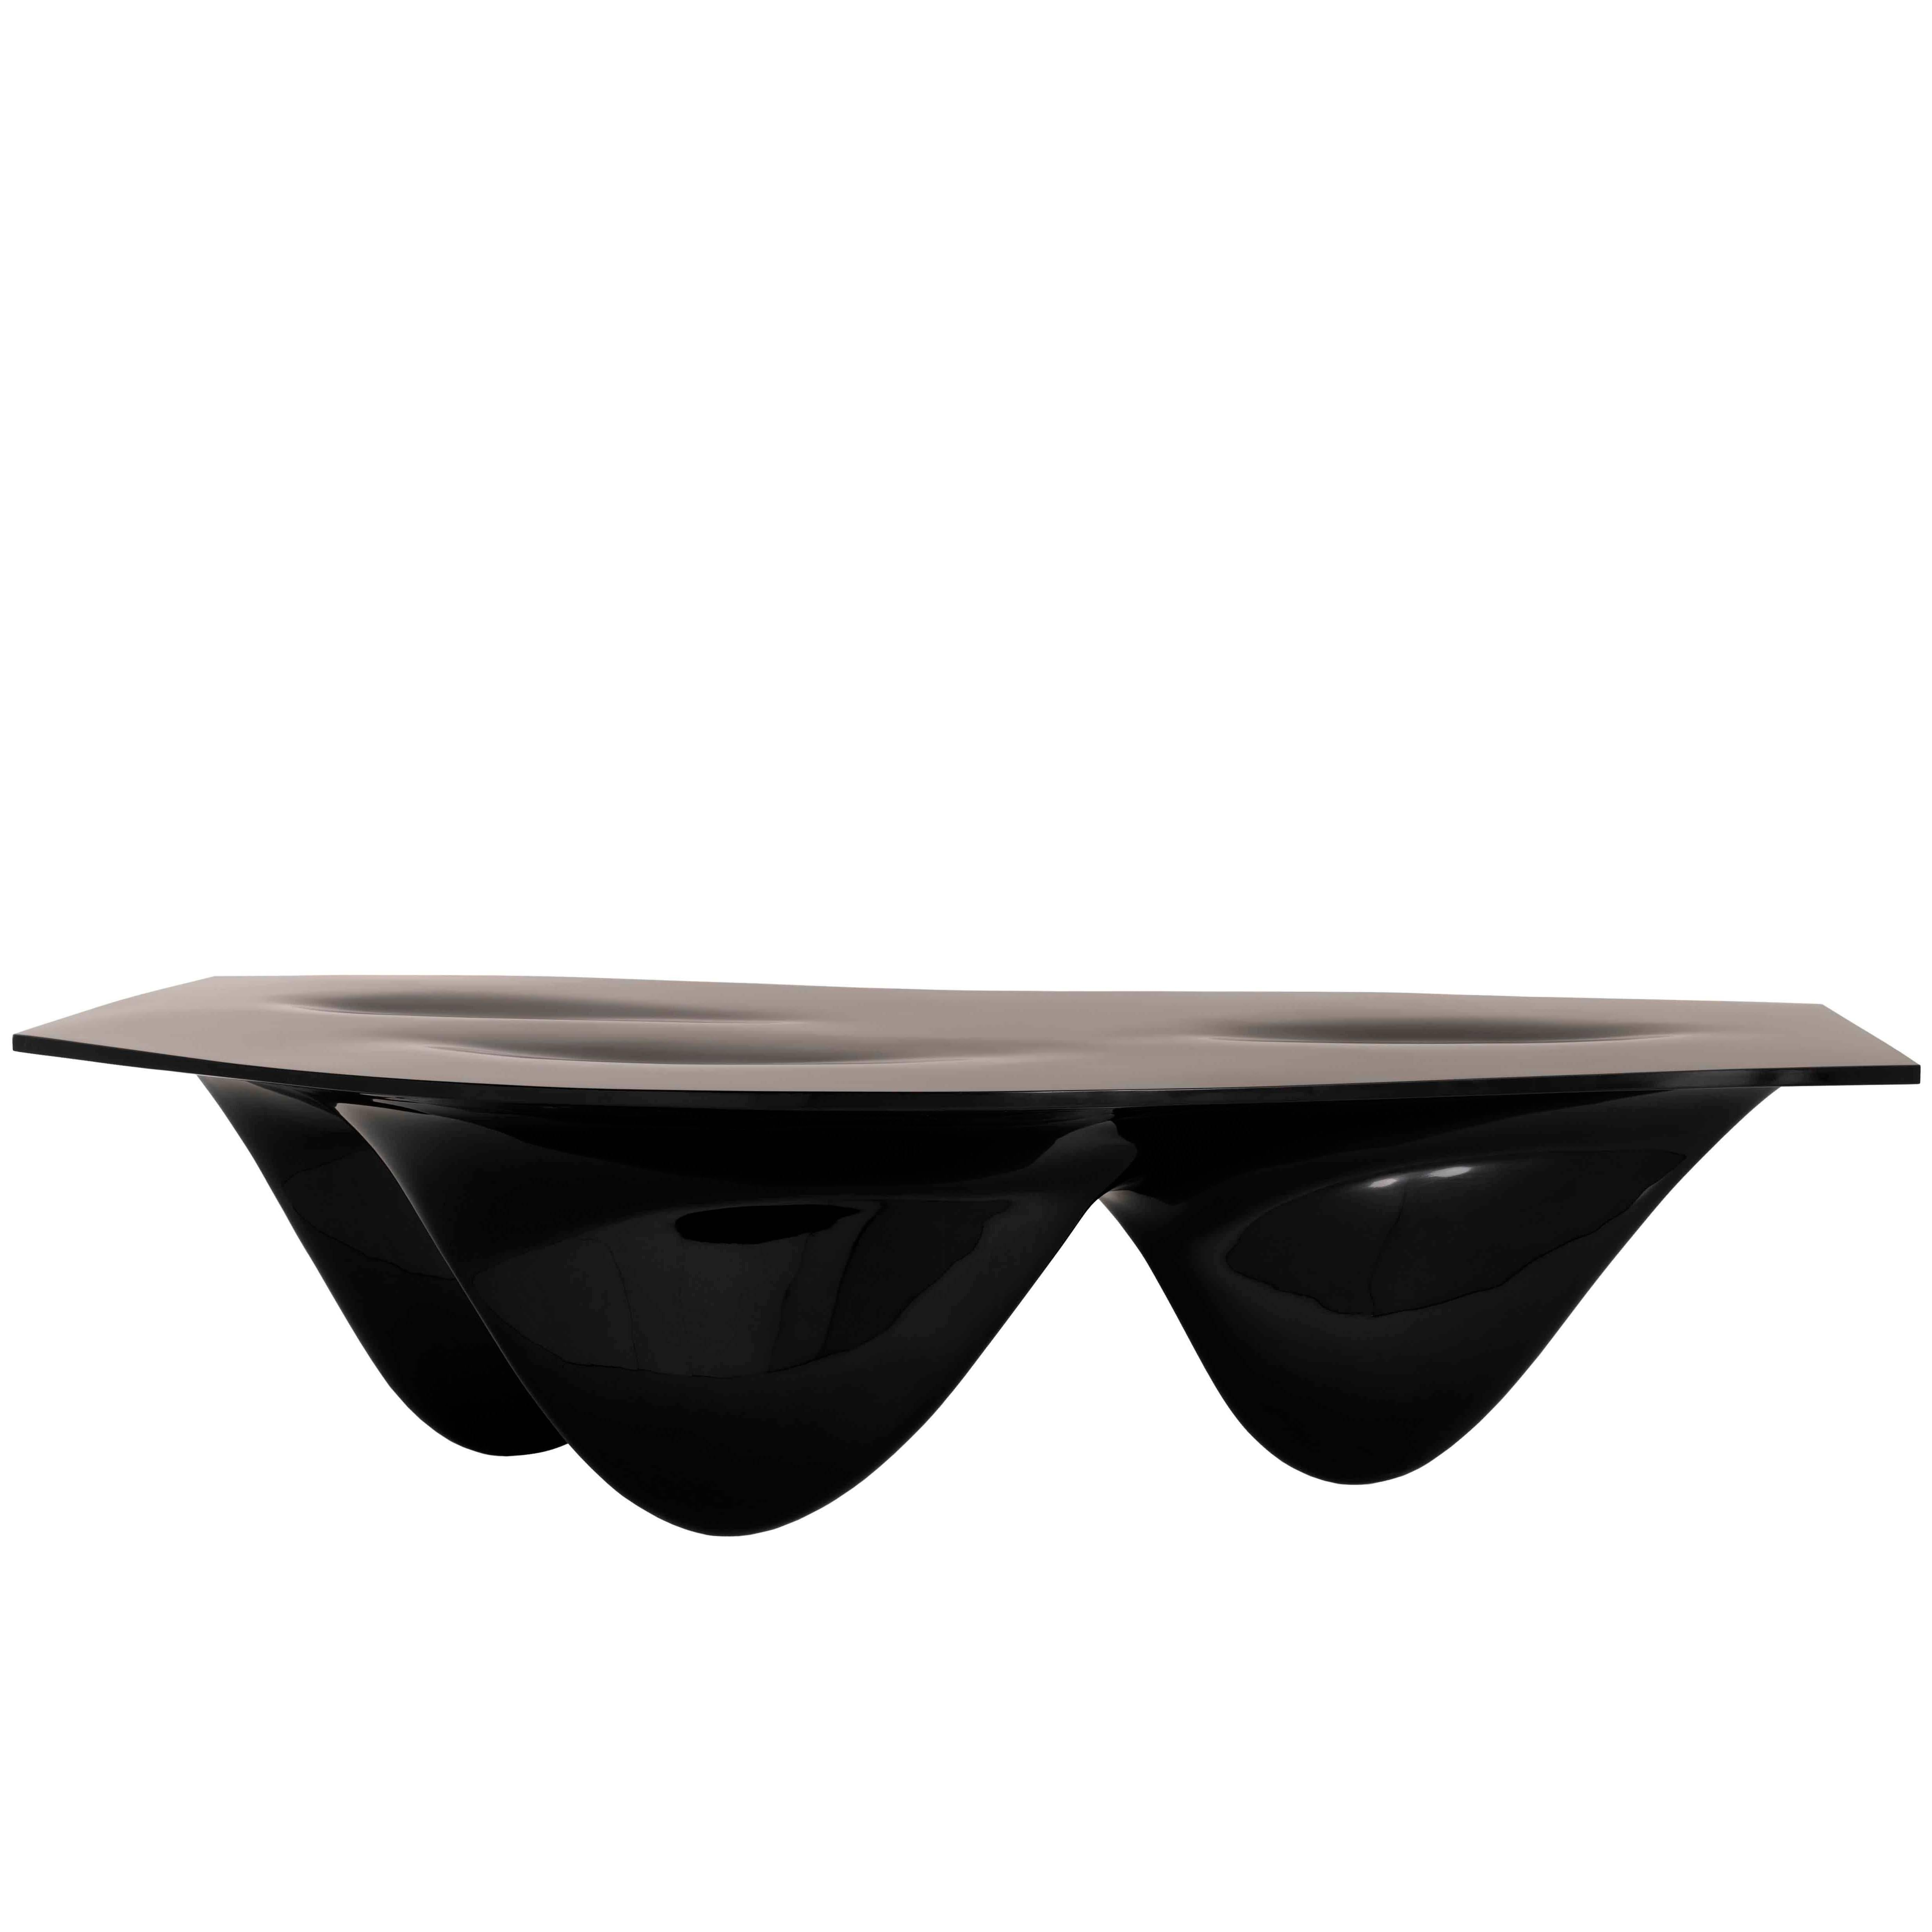 Aqua Table by Zaha Hadid for Established & Sons Signature Collection